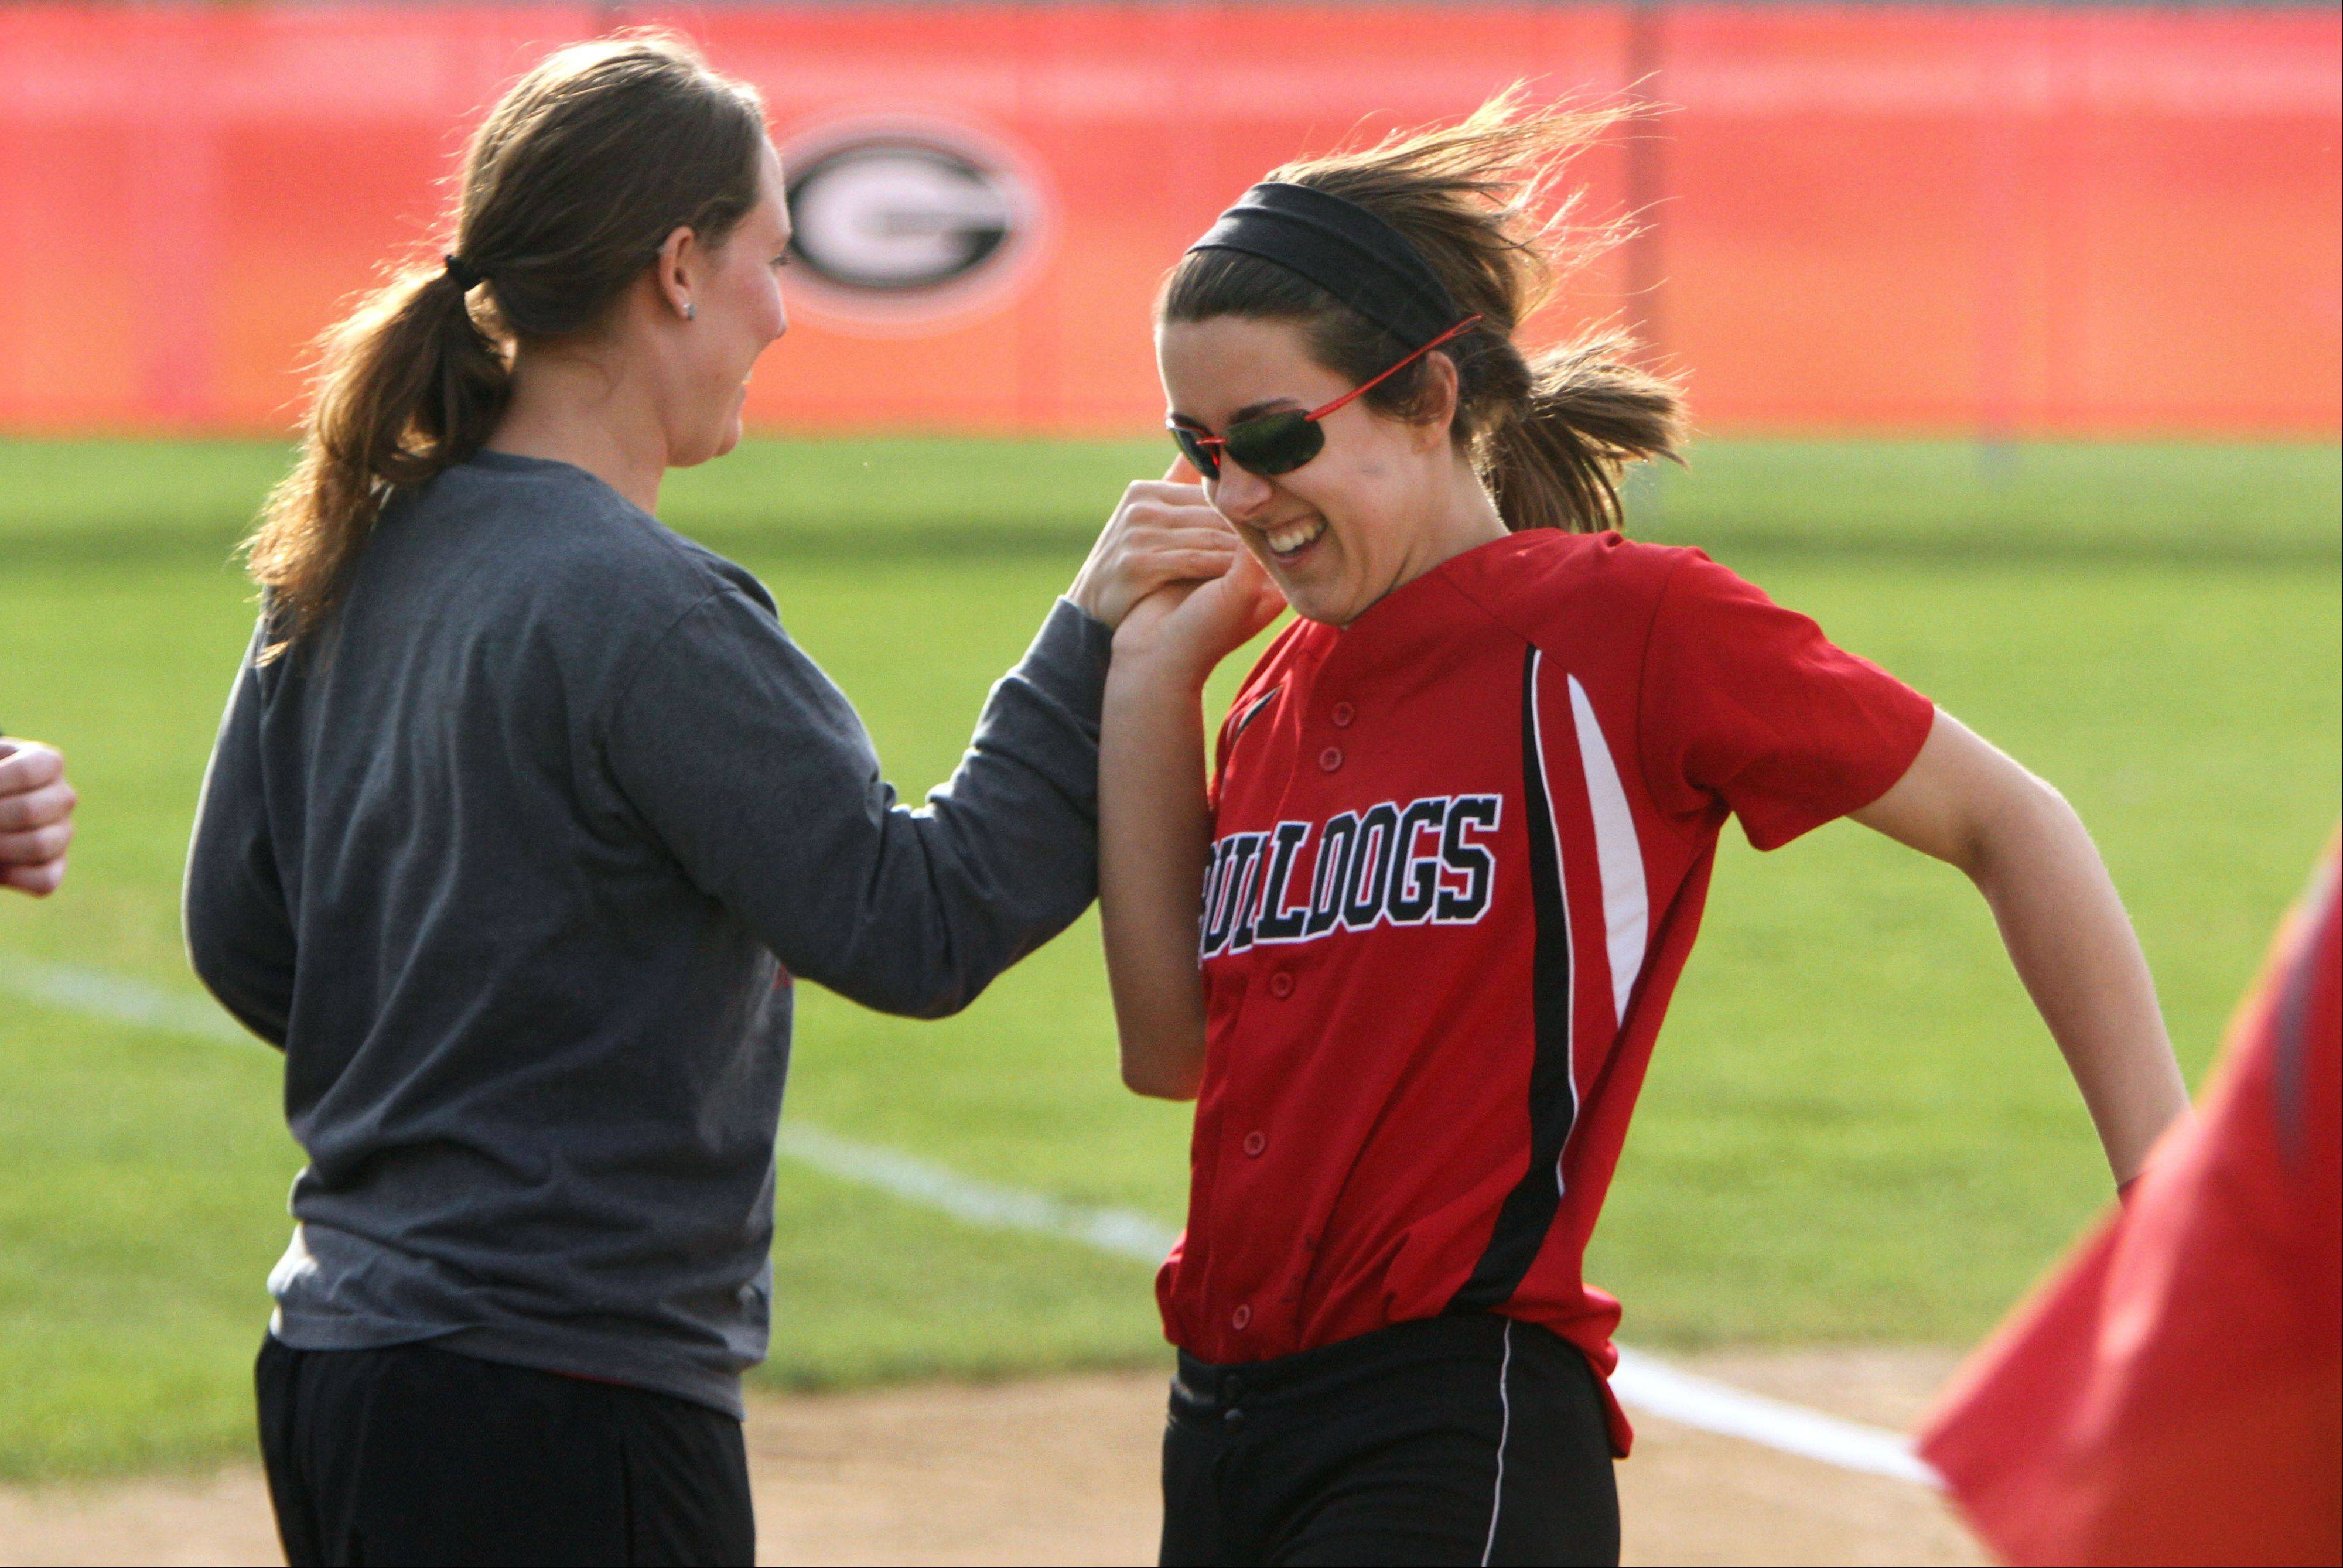 Grant pitcher Caitlyn Moran gets a high five after she and her teammates defeated Wauconda on Monday at Grant.